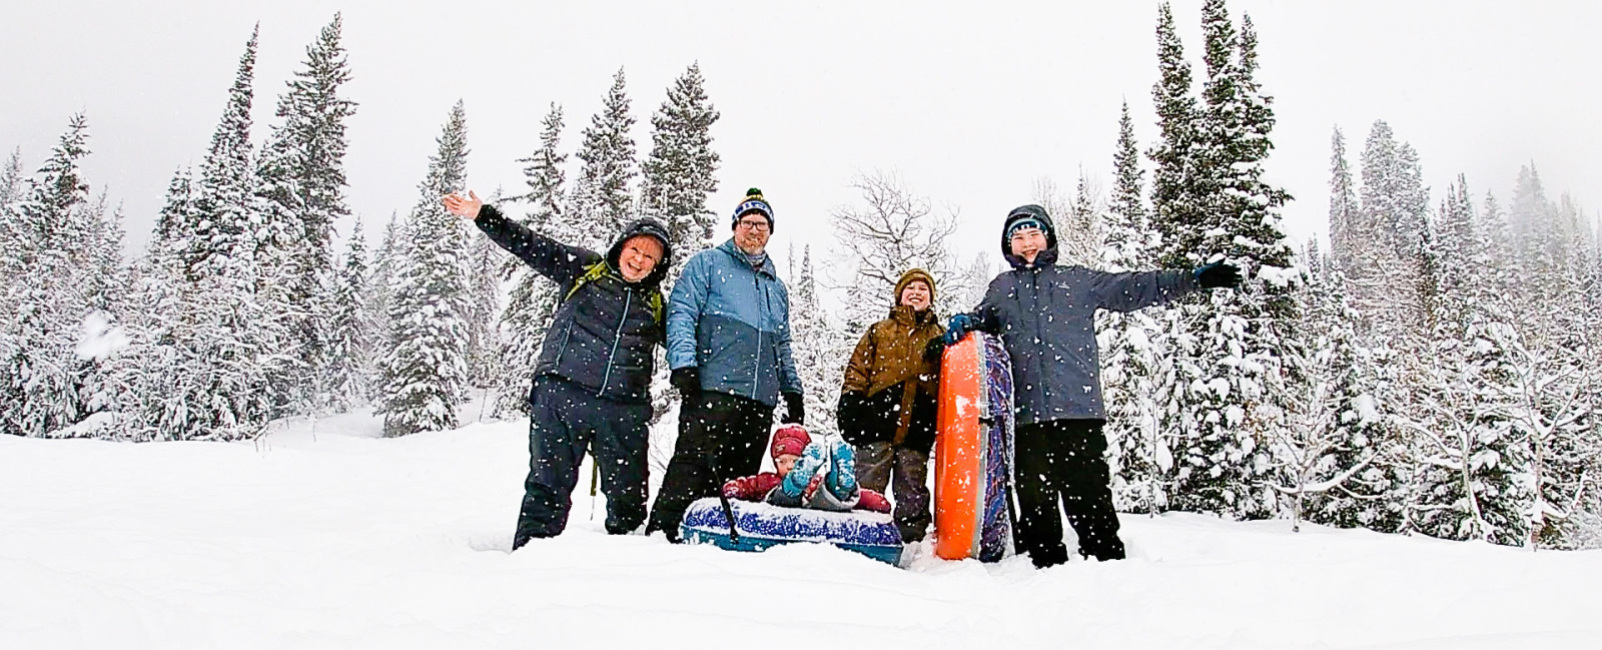 Family Winter Activities For Non-Skiers